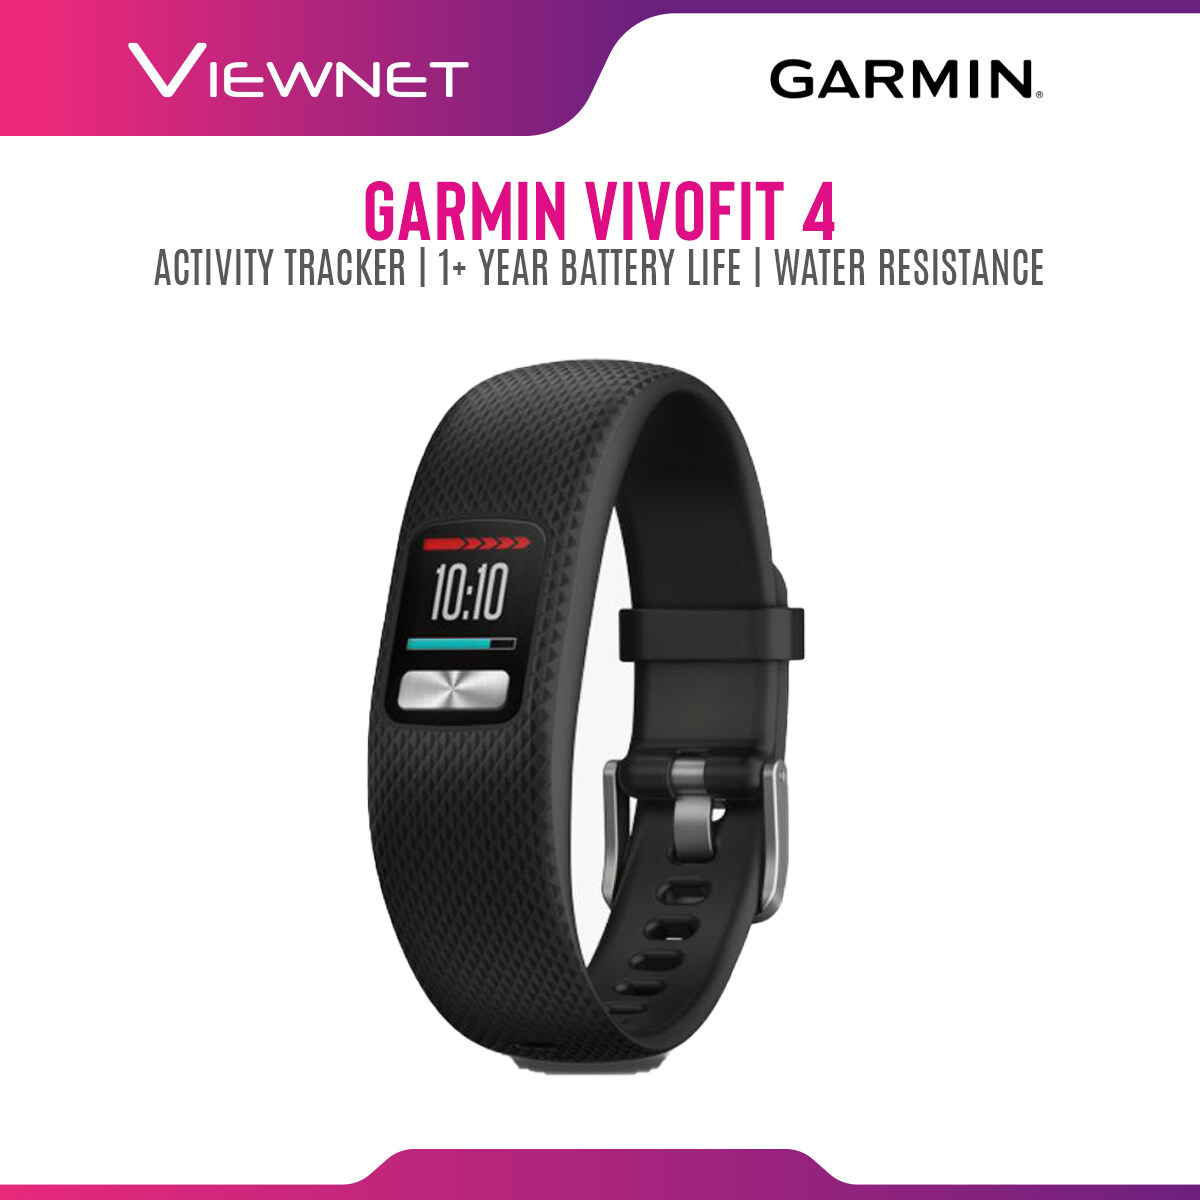 GARMIN VIVOFIT 4 ACTIVITY TRACKER WITH 1+YEAR BATTERY LIFE (010-01847-20) - BLACK